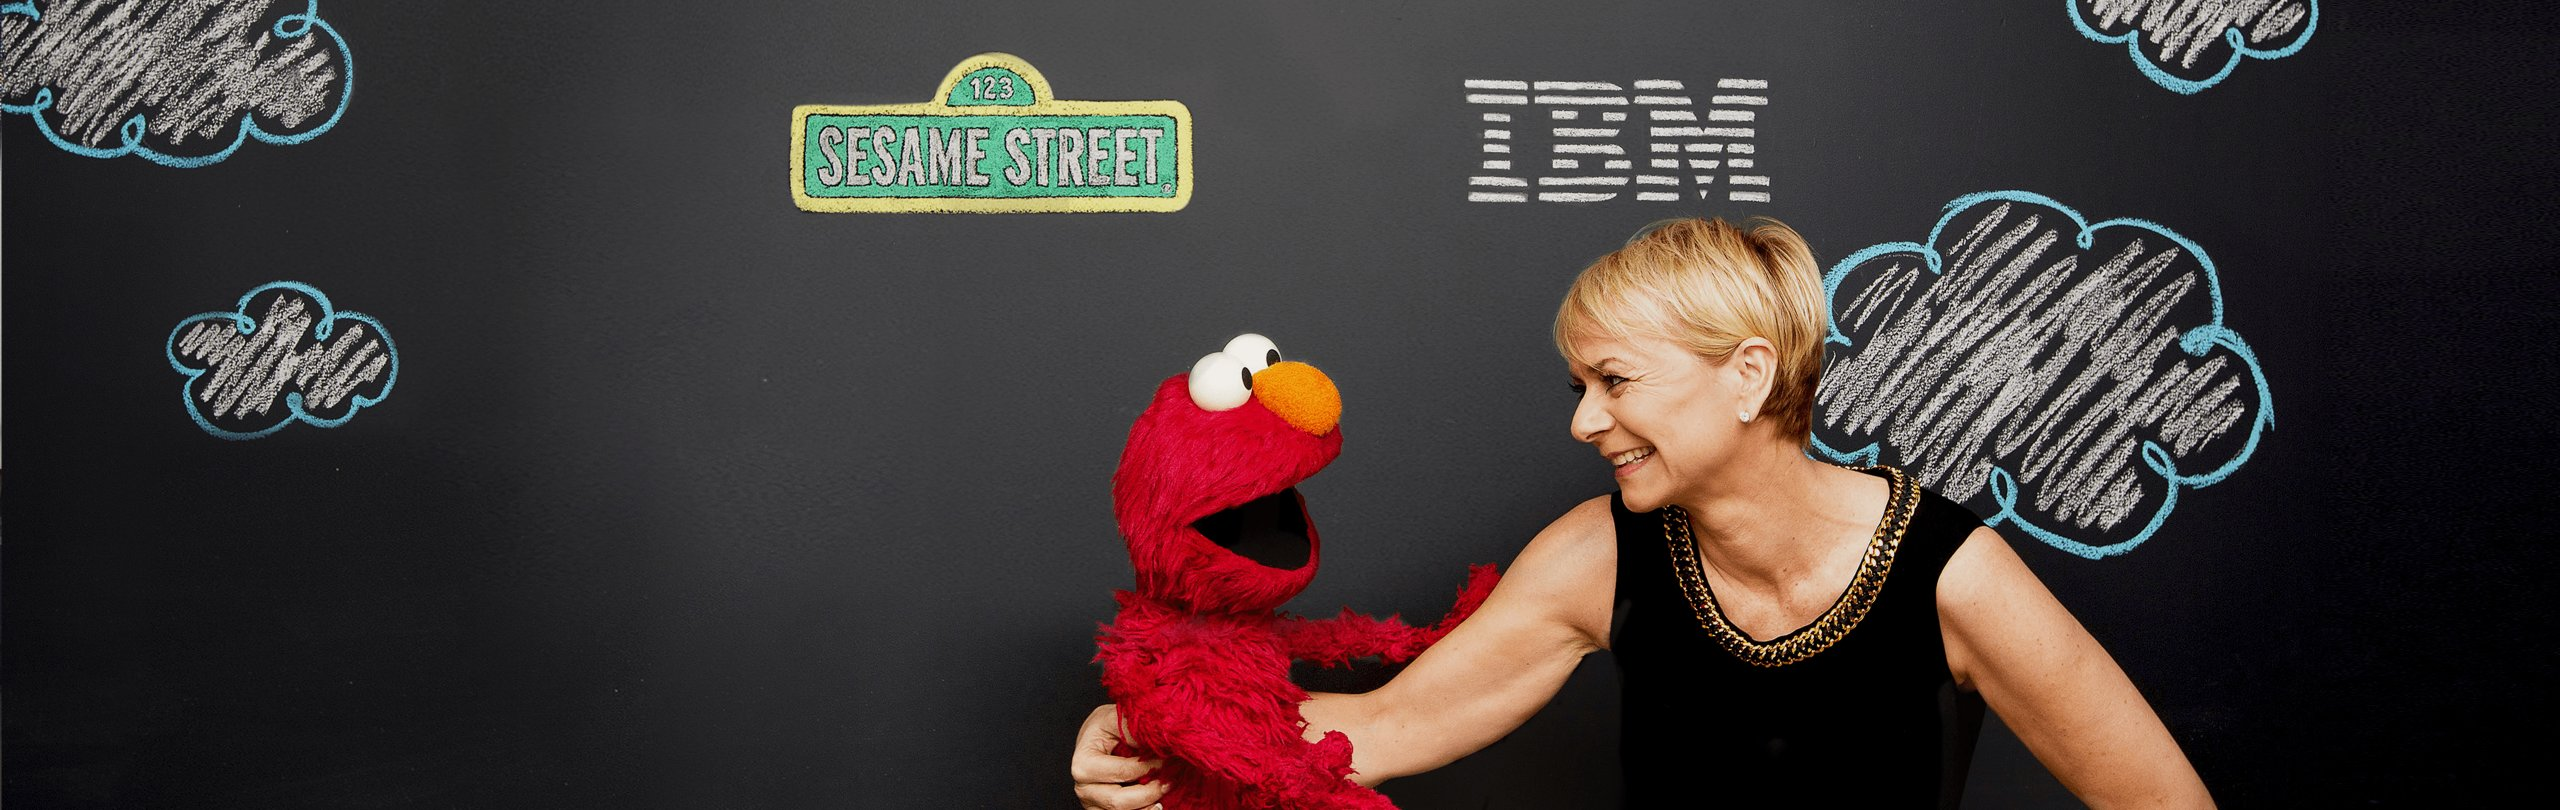 Elmo and woman smiling in front of Sesame Street and IBM logos